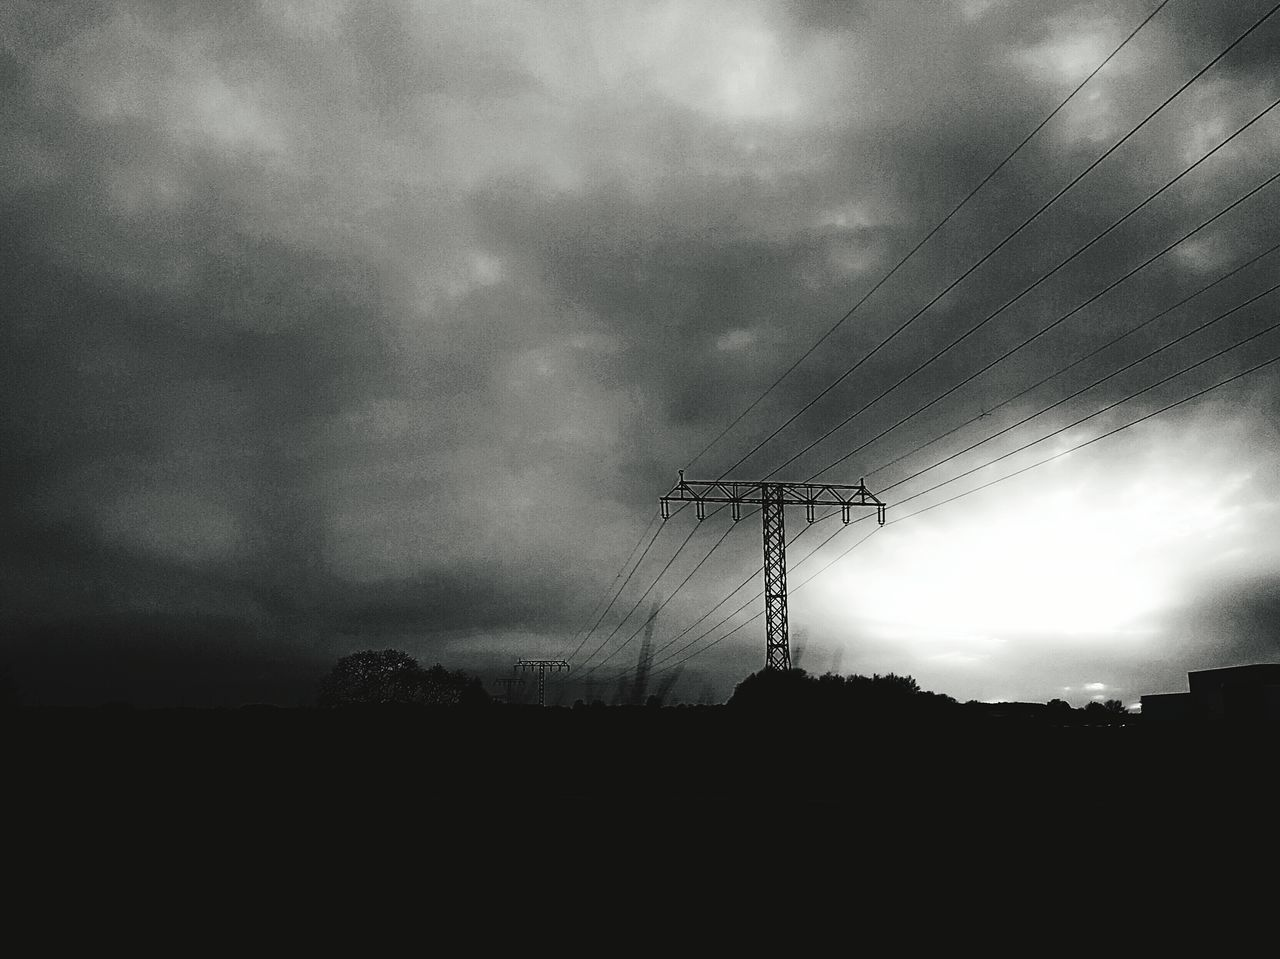 Electricity  Silhouette Sky No People Outdoors Technology Electricity Pylon Monochrome Photography Black And White Photography Monochrome Black And White On The Road